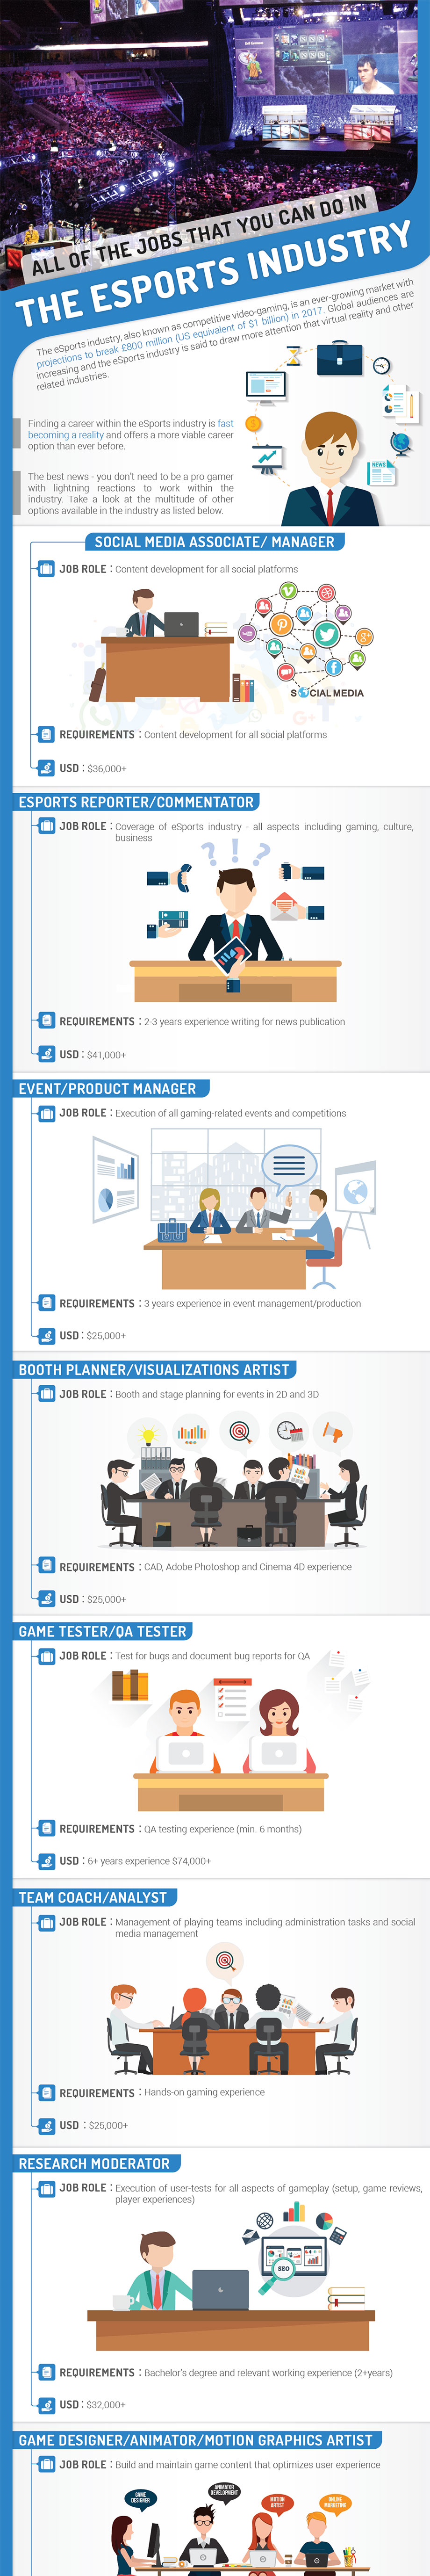 Career Opportunities in the eSports Industry (Infographic) - 1